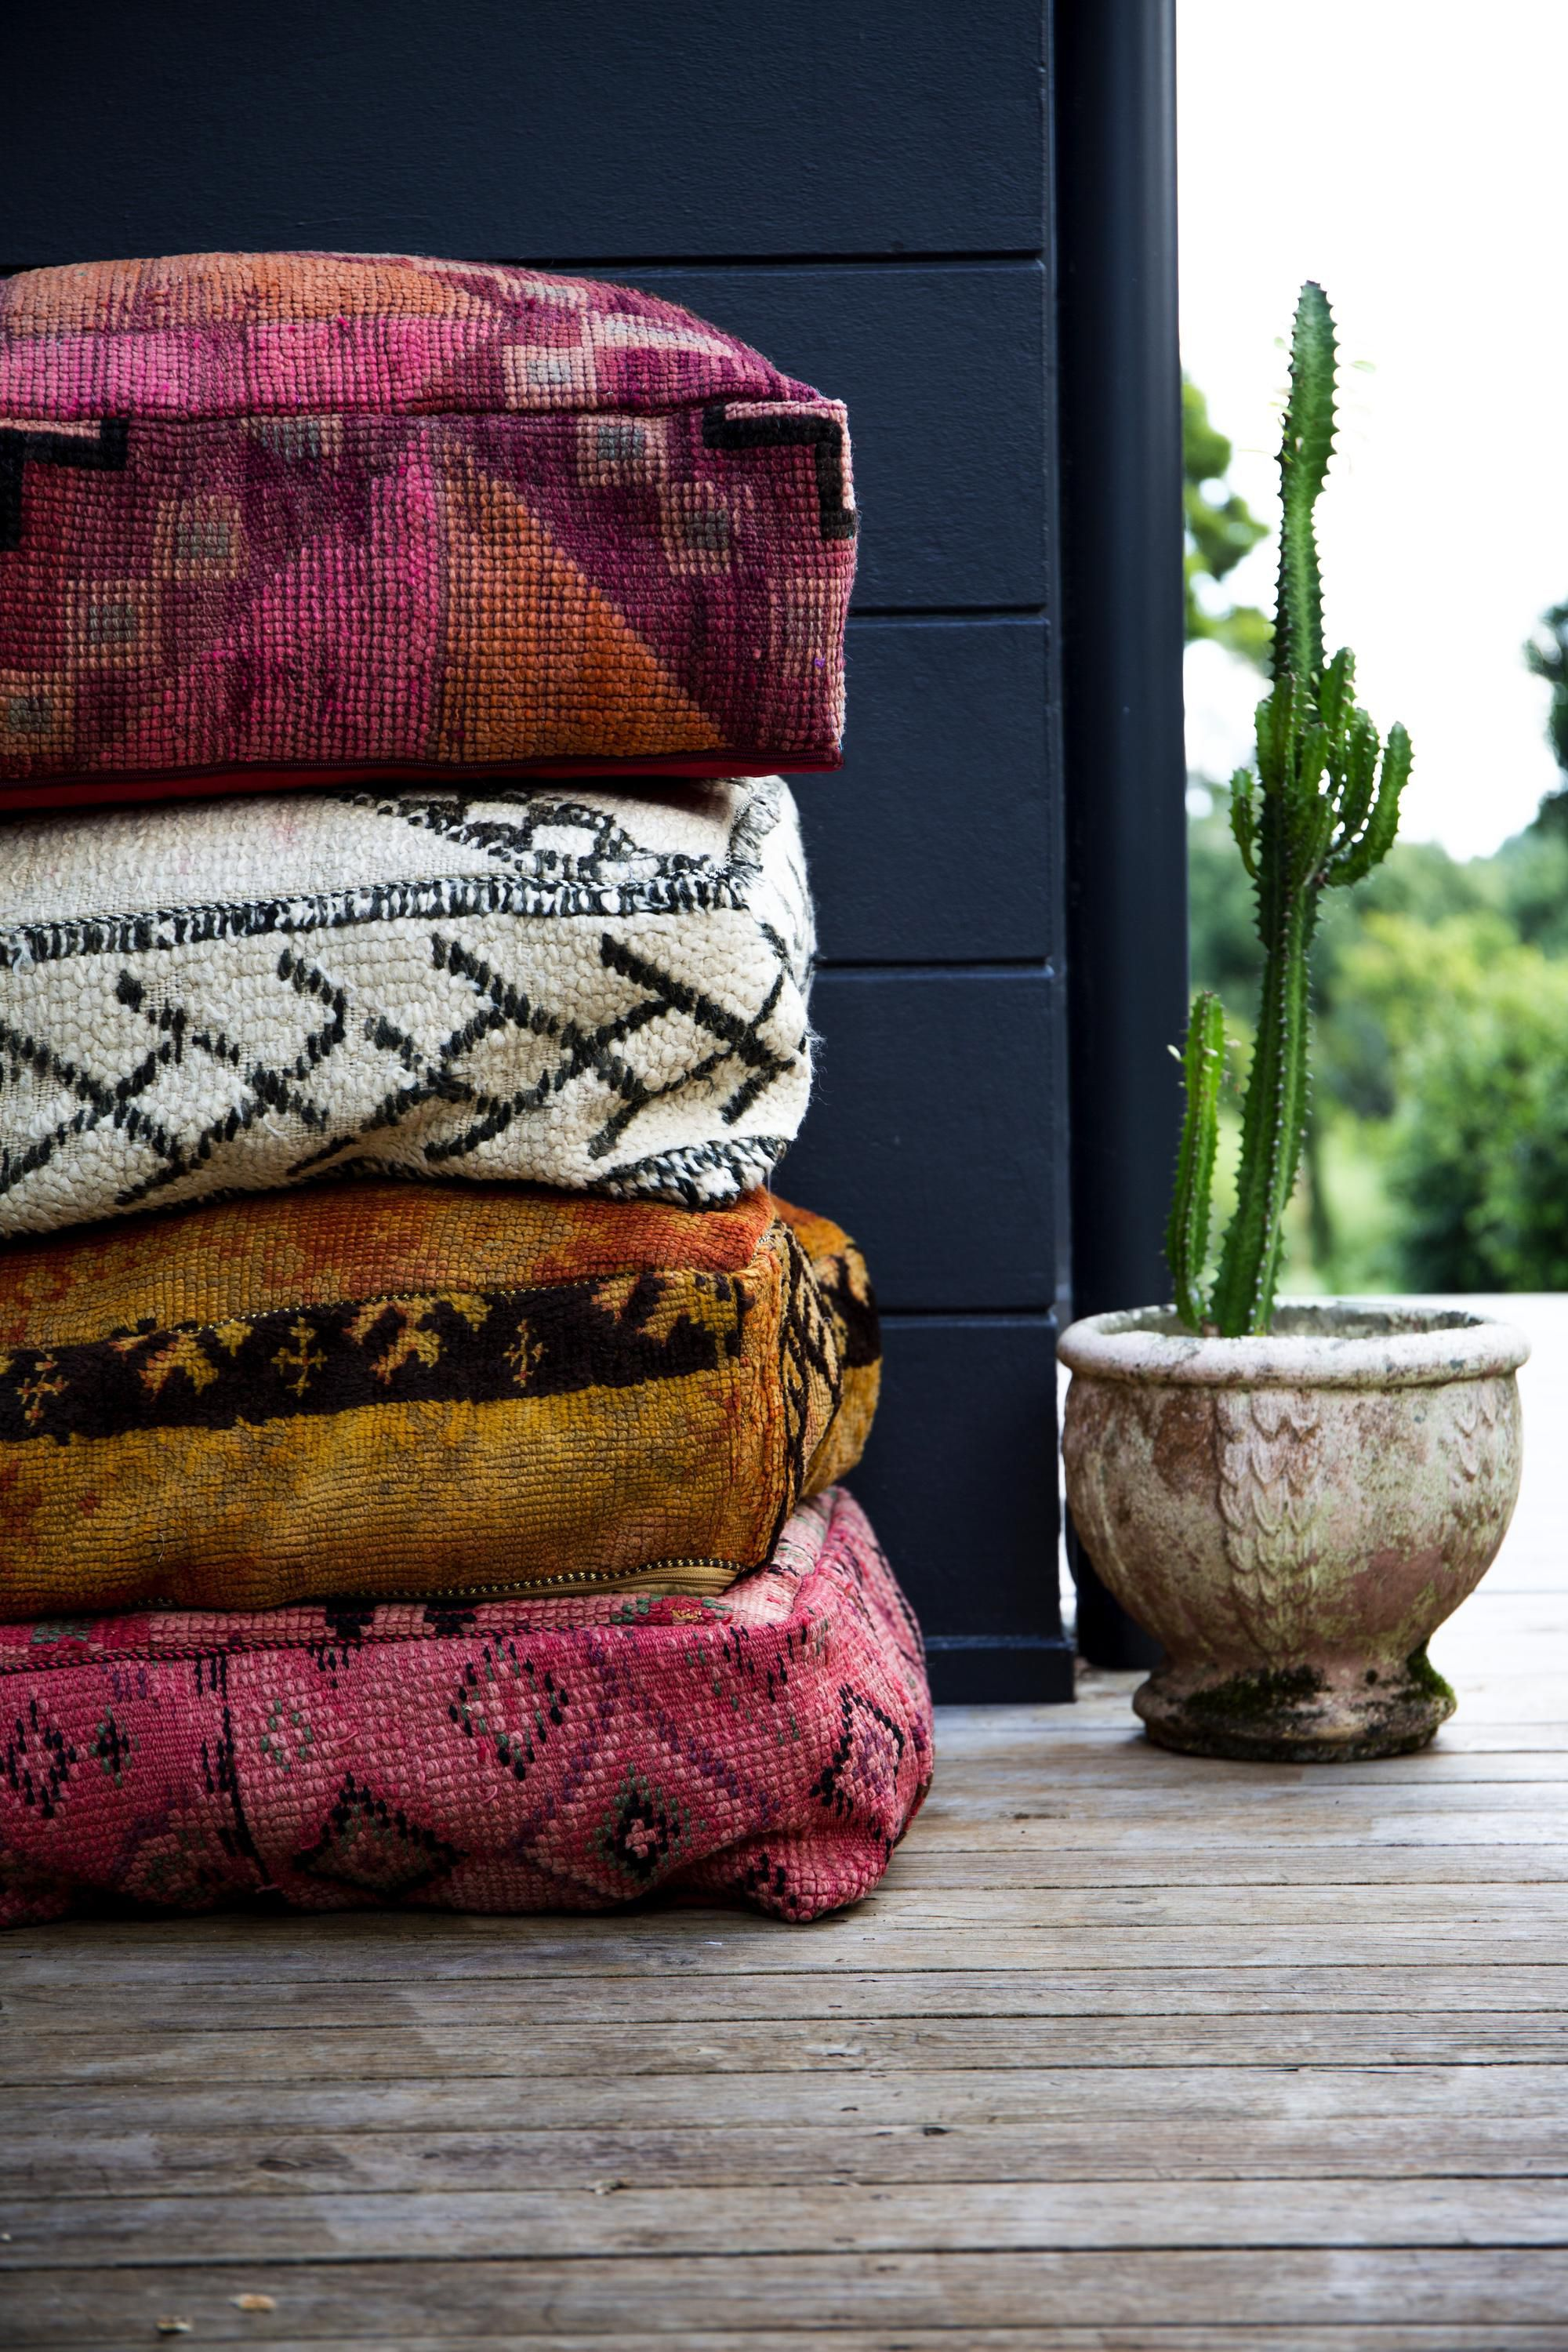 home pillow arranged made pillows ideas large small shape floor with astonishing moroccan from couch into design additional native colorful giant designs acce feat throw